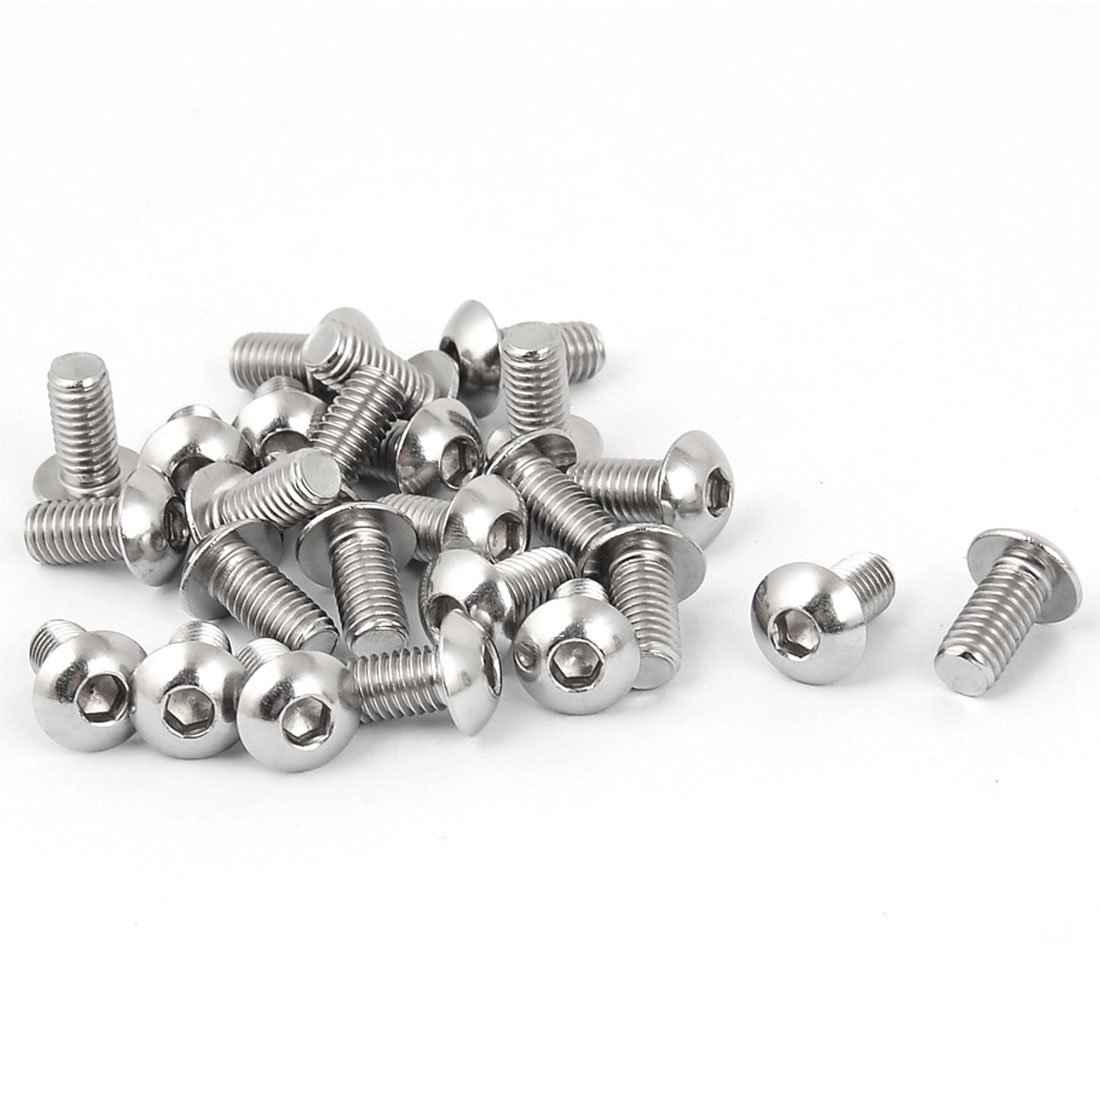 uxcell M5 x 10mm Stainless Steel Button Head Socket Cap Screw 25 Pcs